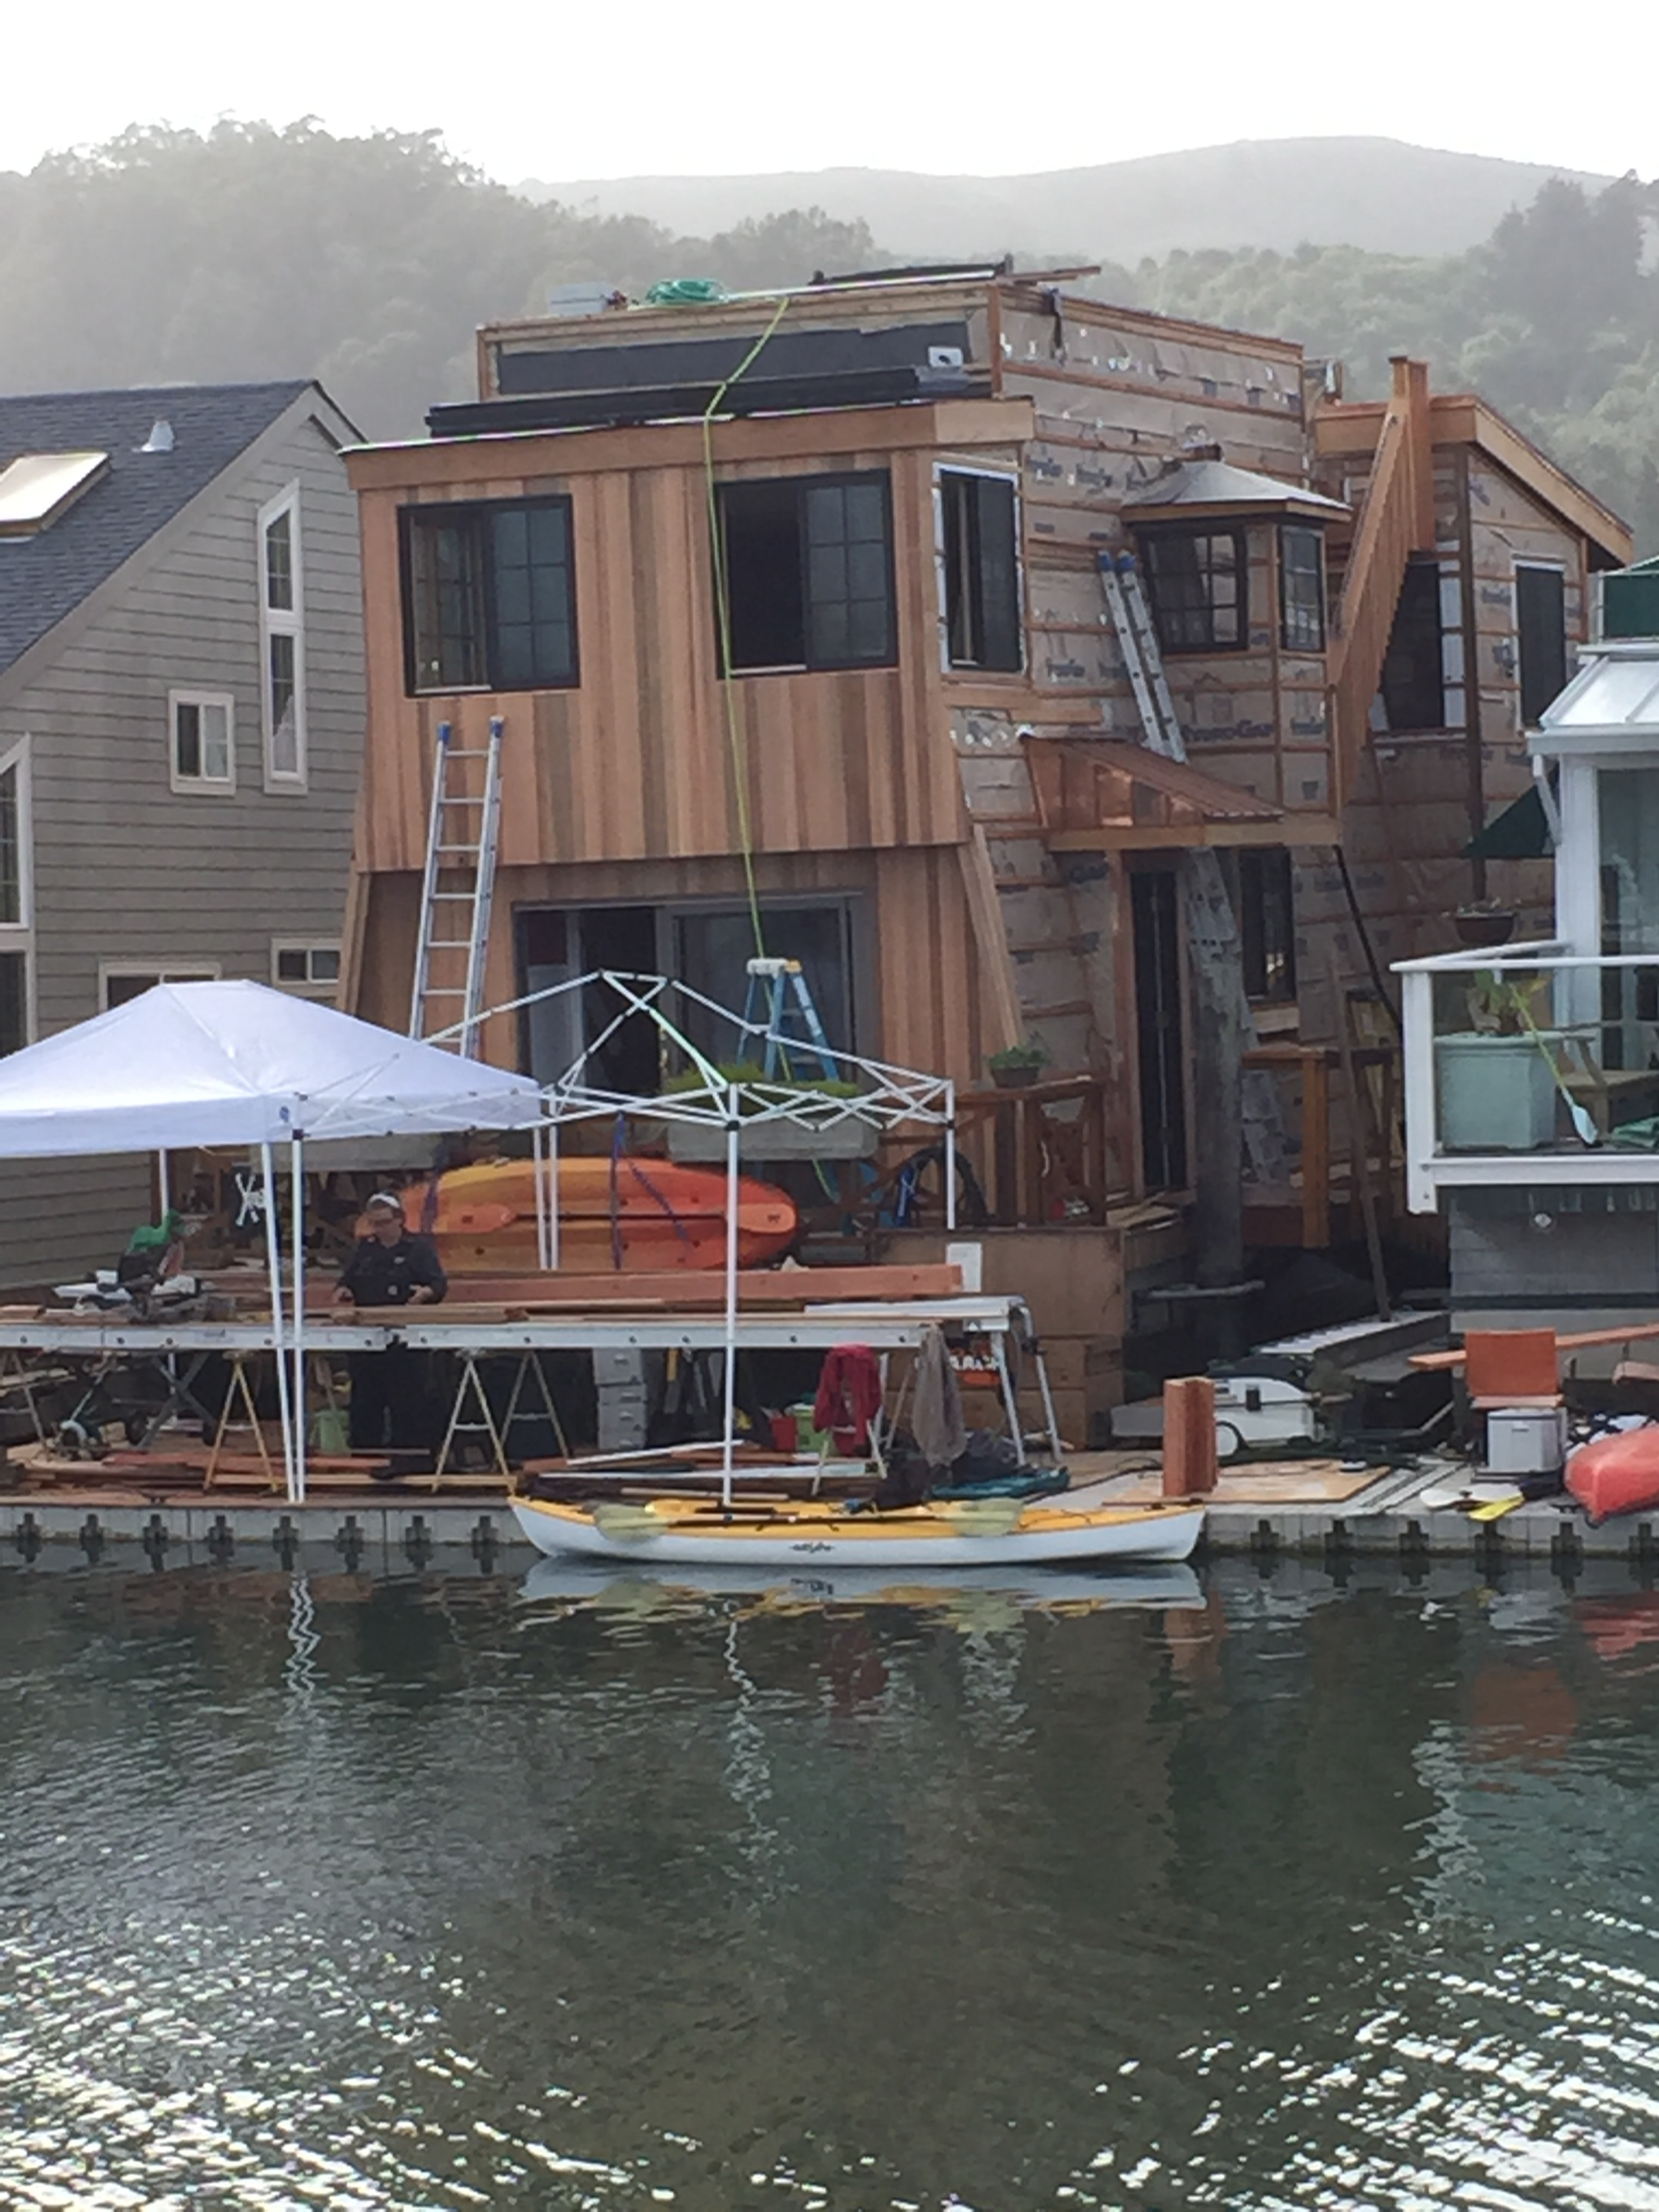 Acclaimed renovator calls on HydroGap for moisture management in unique Bay Area houseboat community